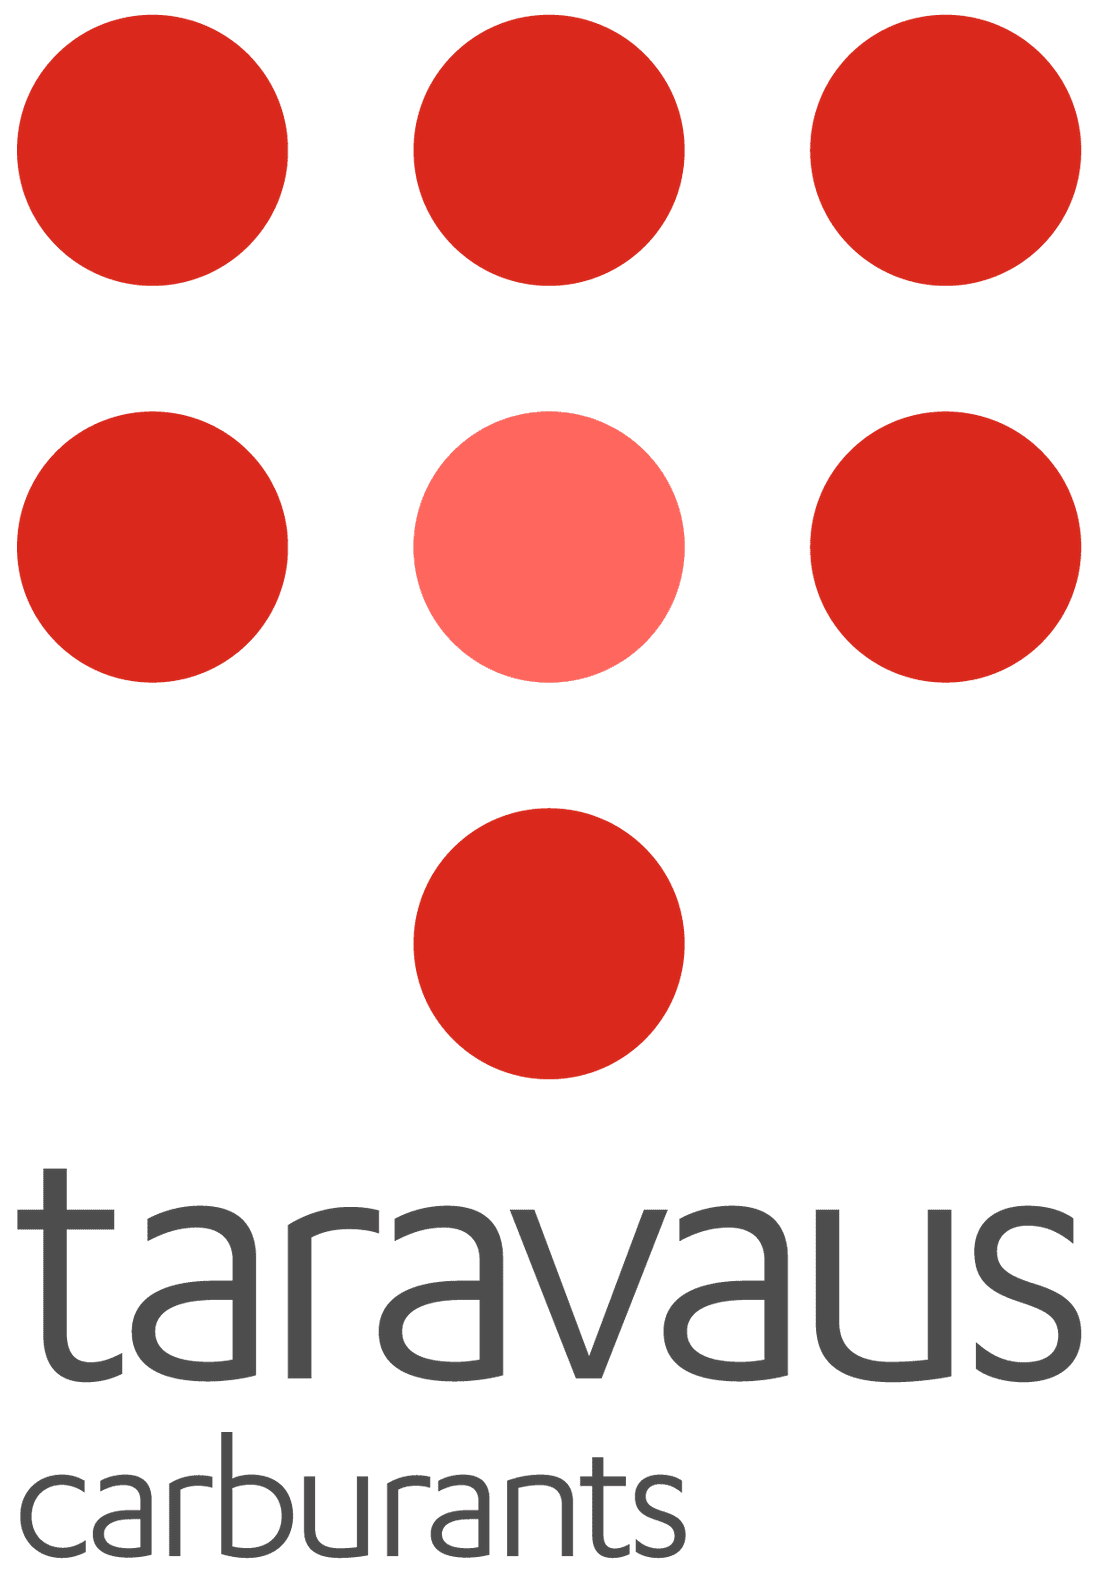 Carburants Taravaus